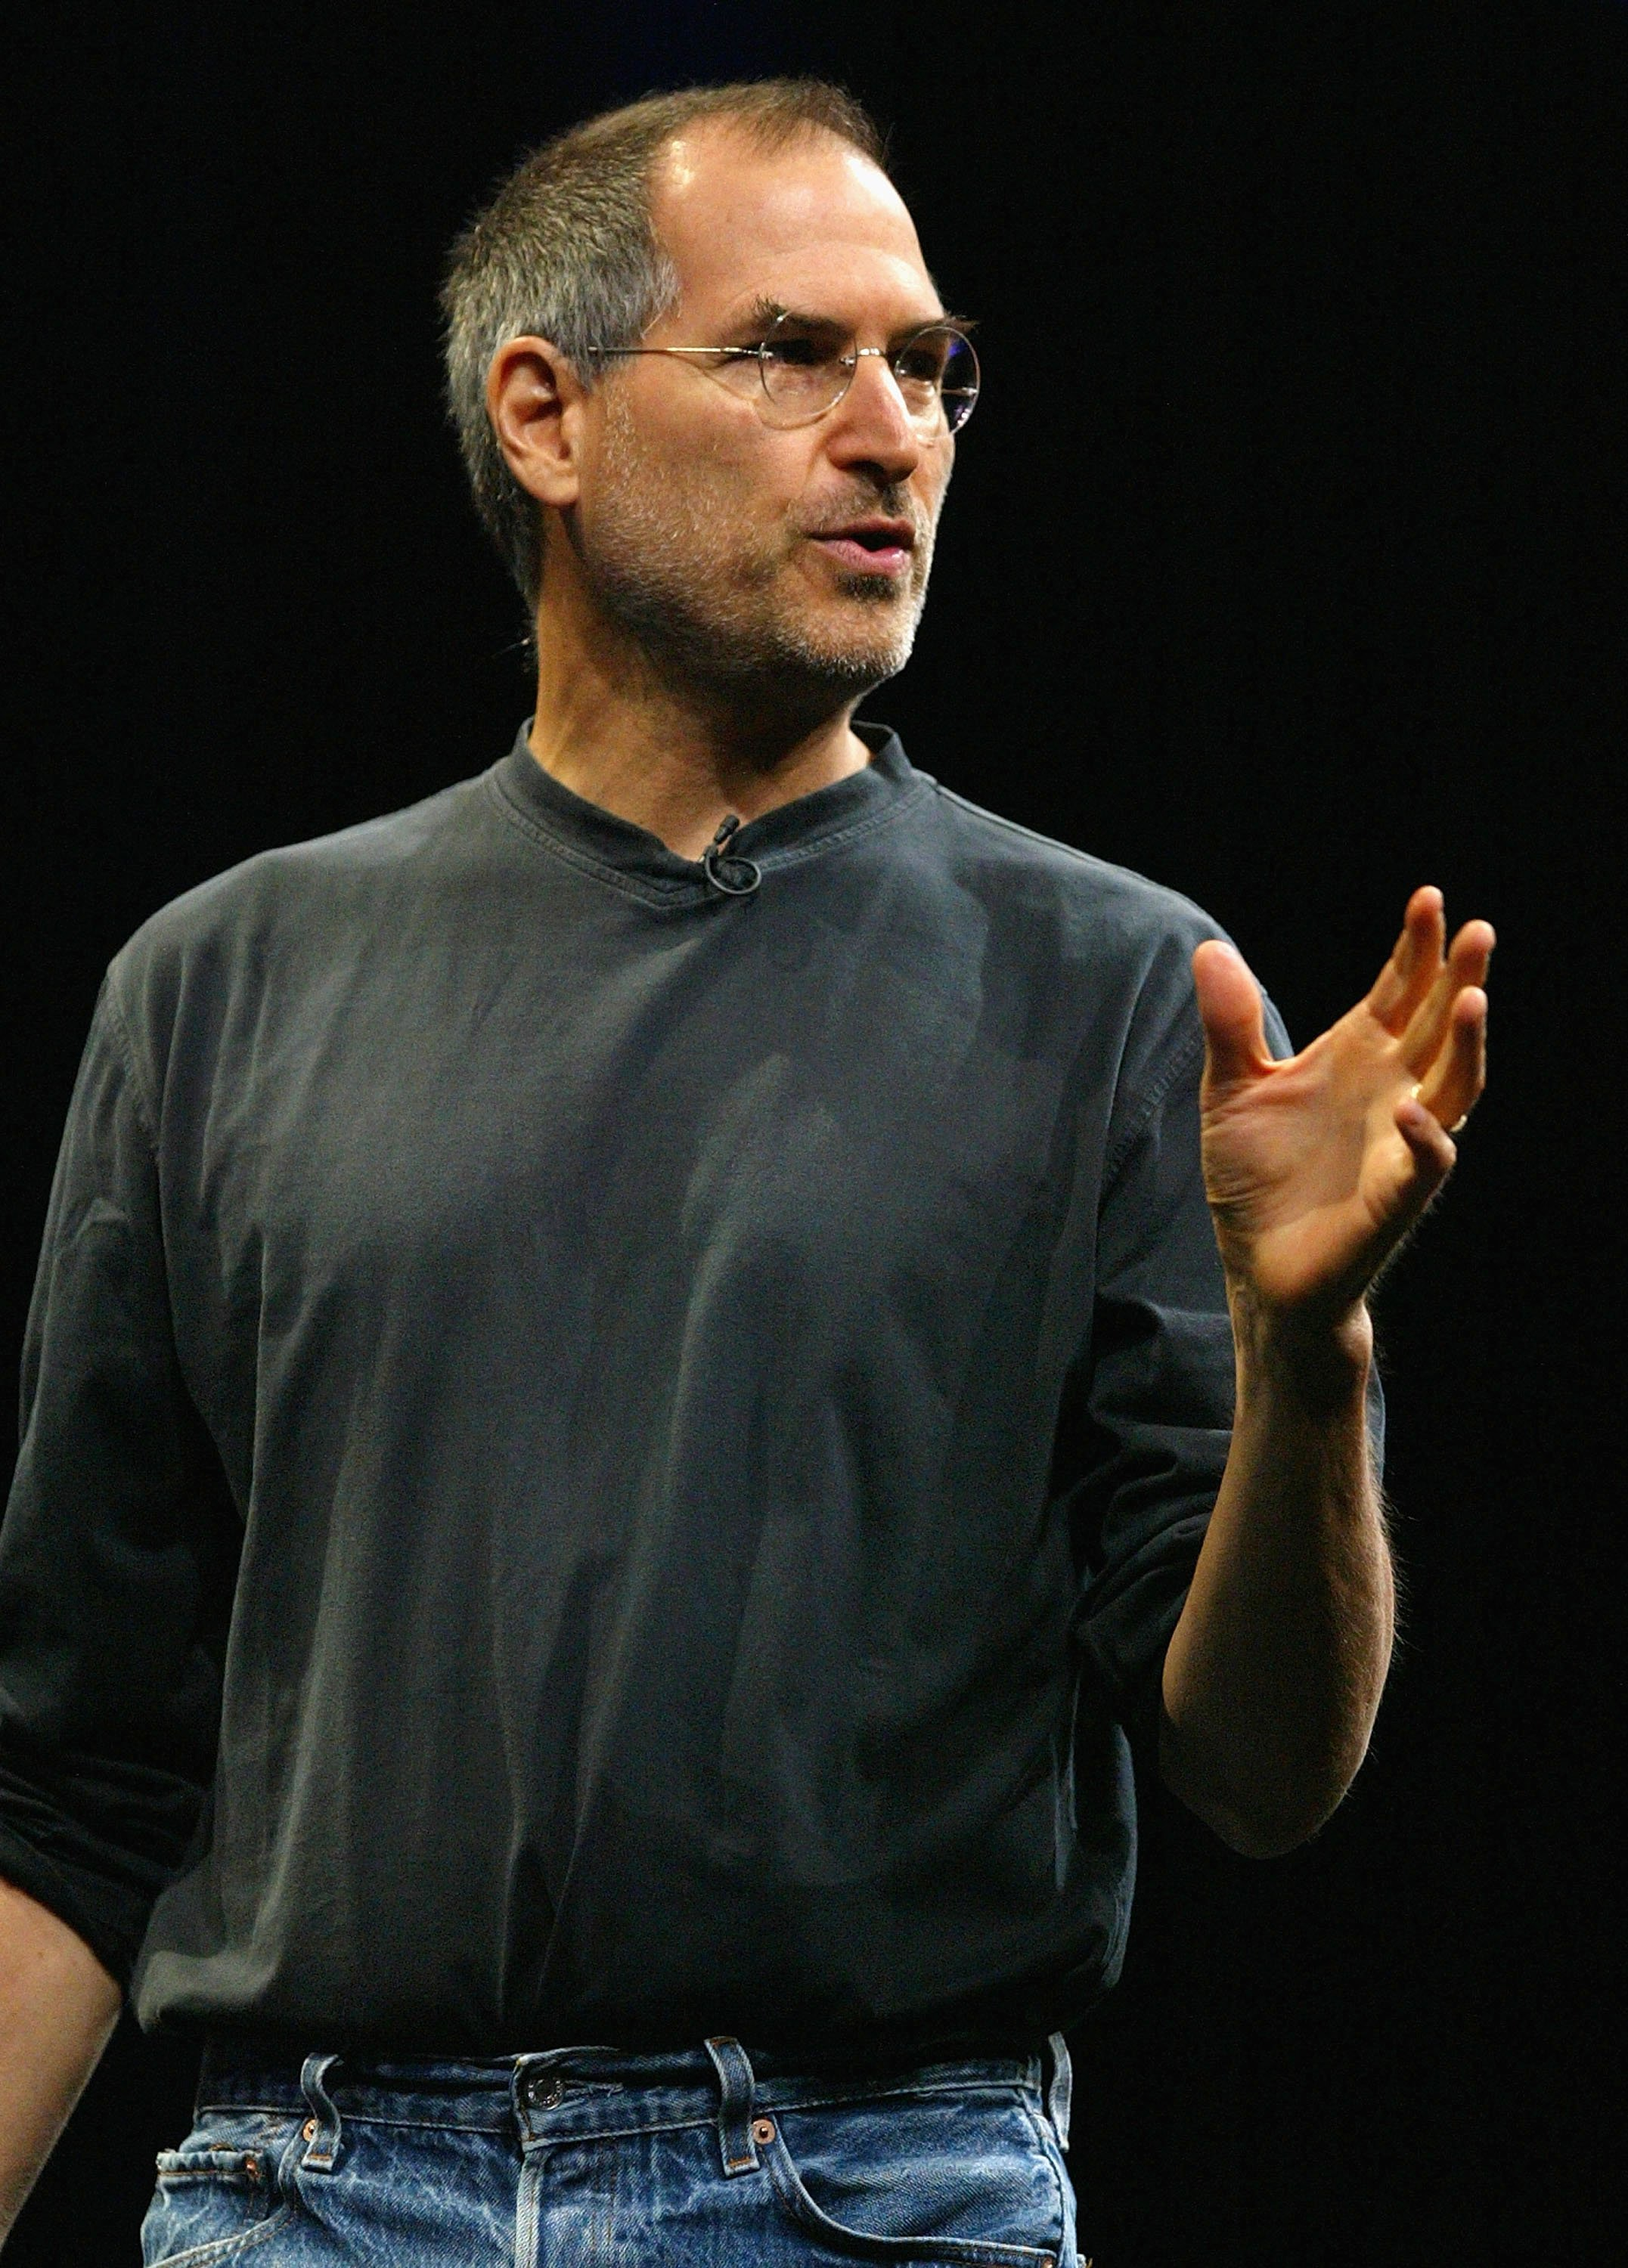 Steve Jobs I Image: Getty Images